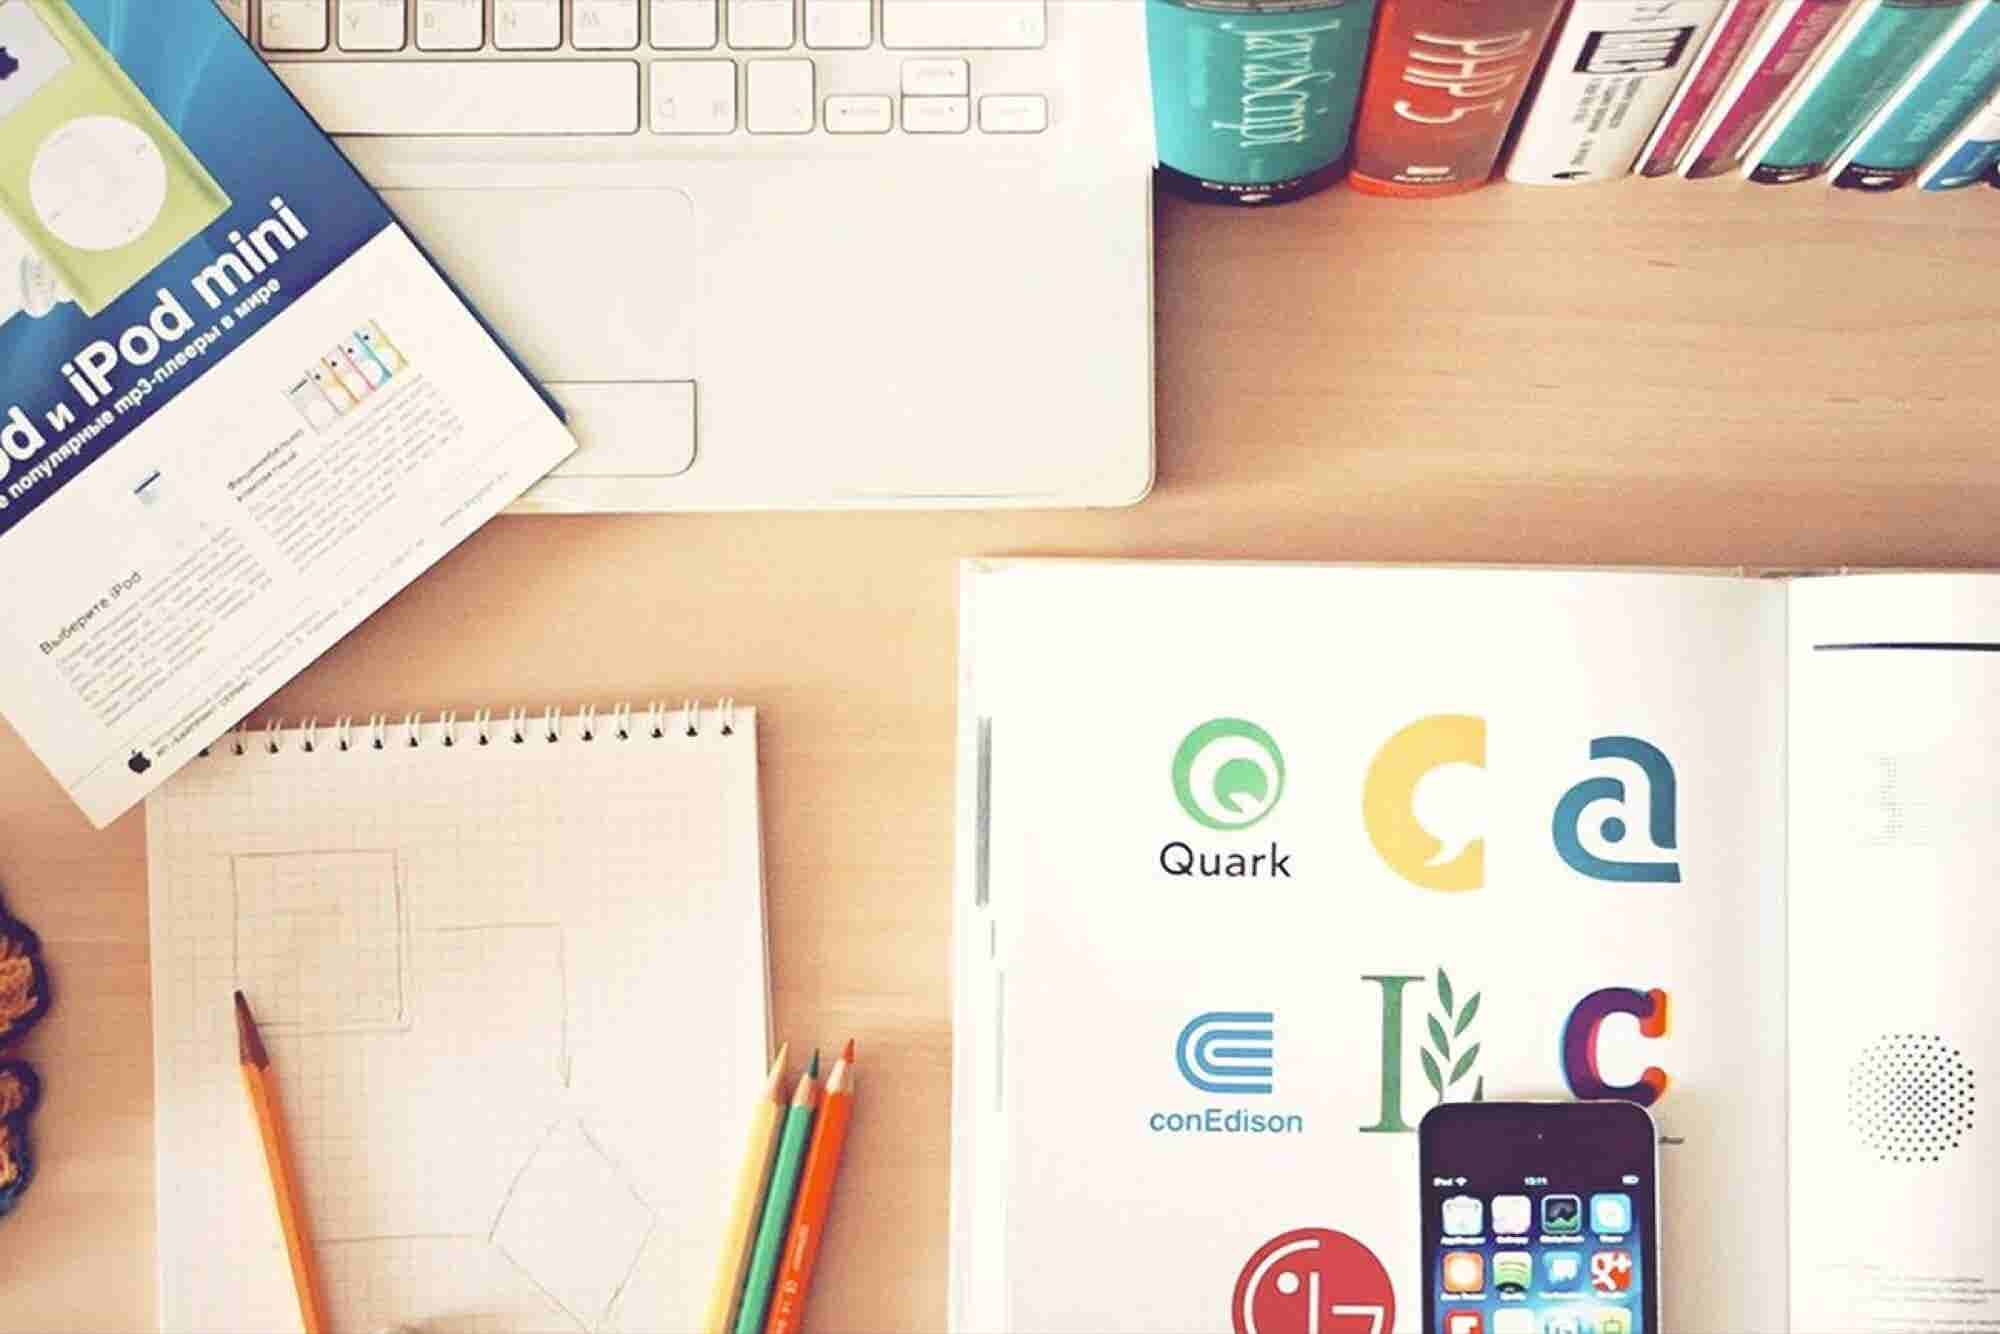 37 Free Online Marketing and Social Media Classes to Elevate Your Skills